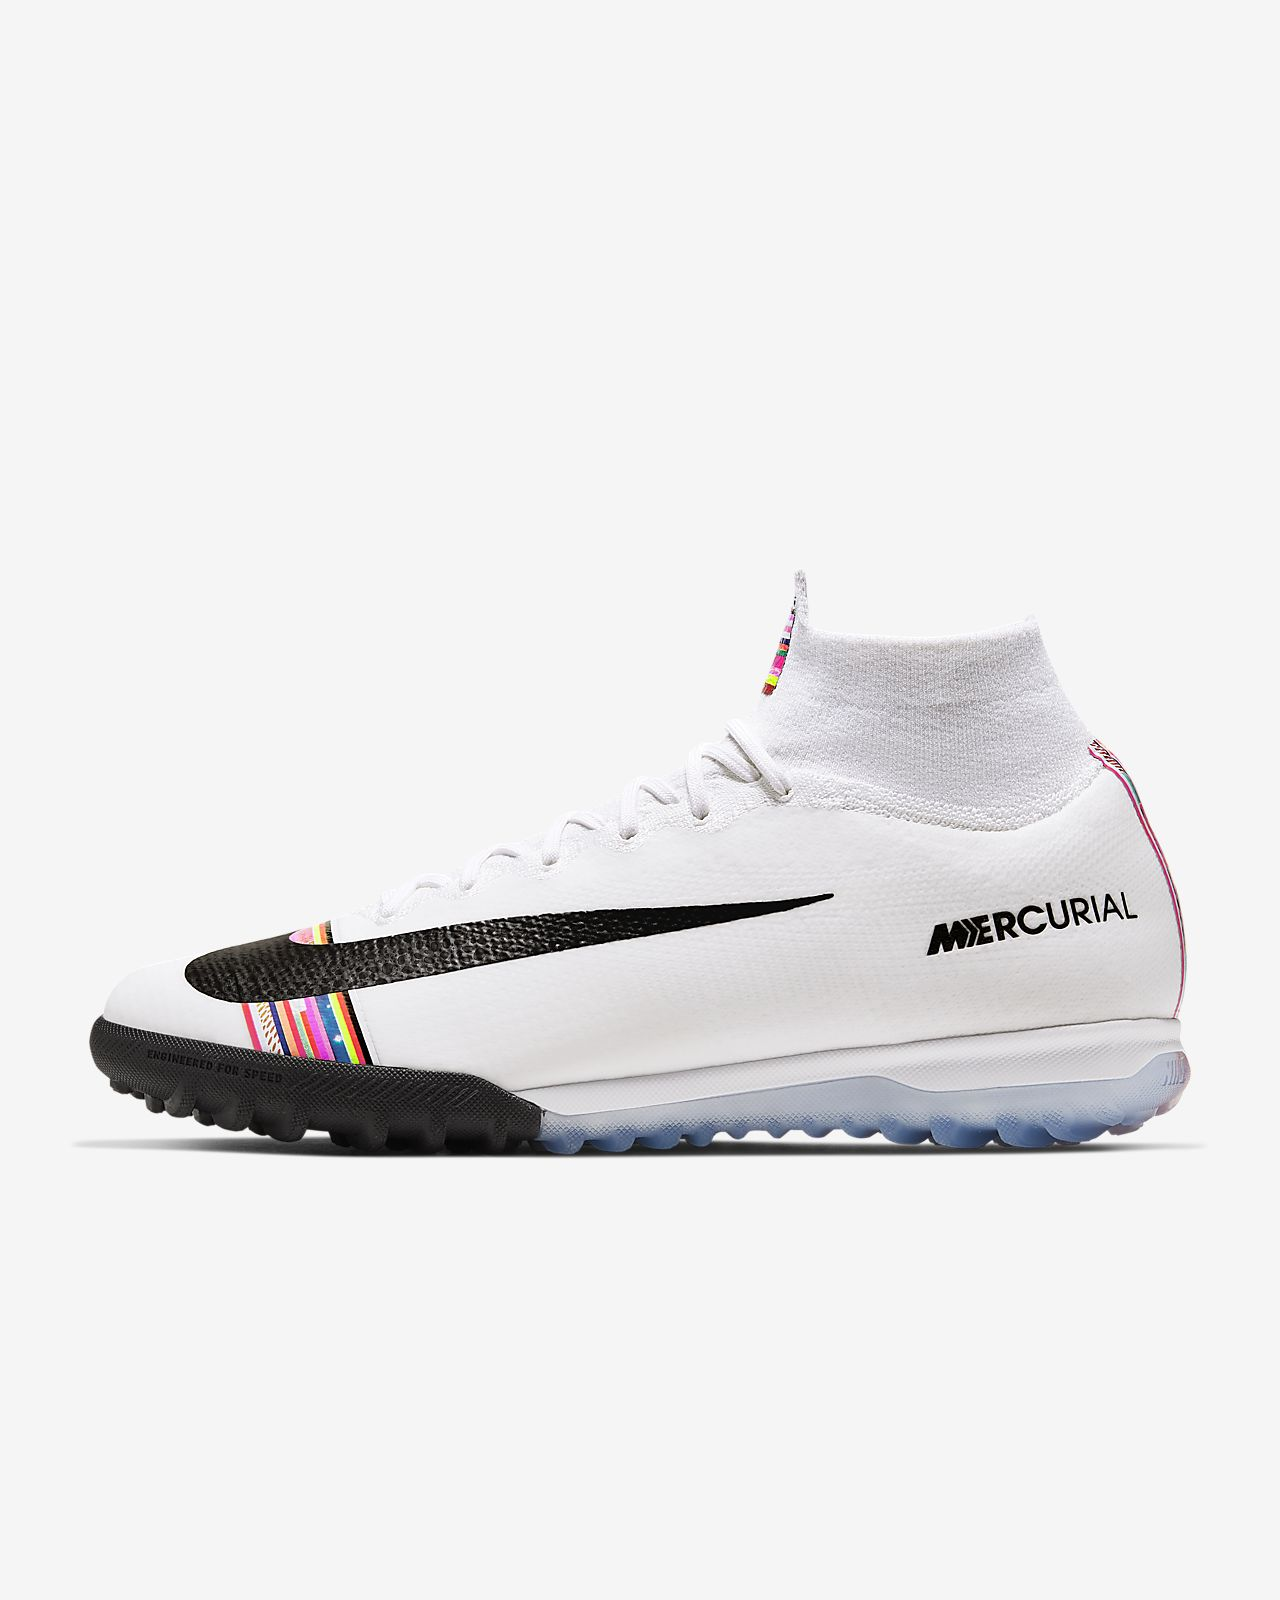 Chaussure de football pour surface synthétique Nike SuperflyX 6 Elite LVL UP TF